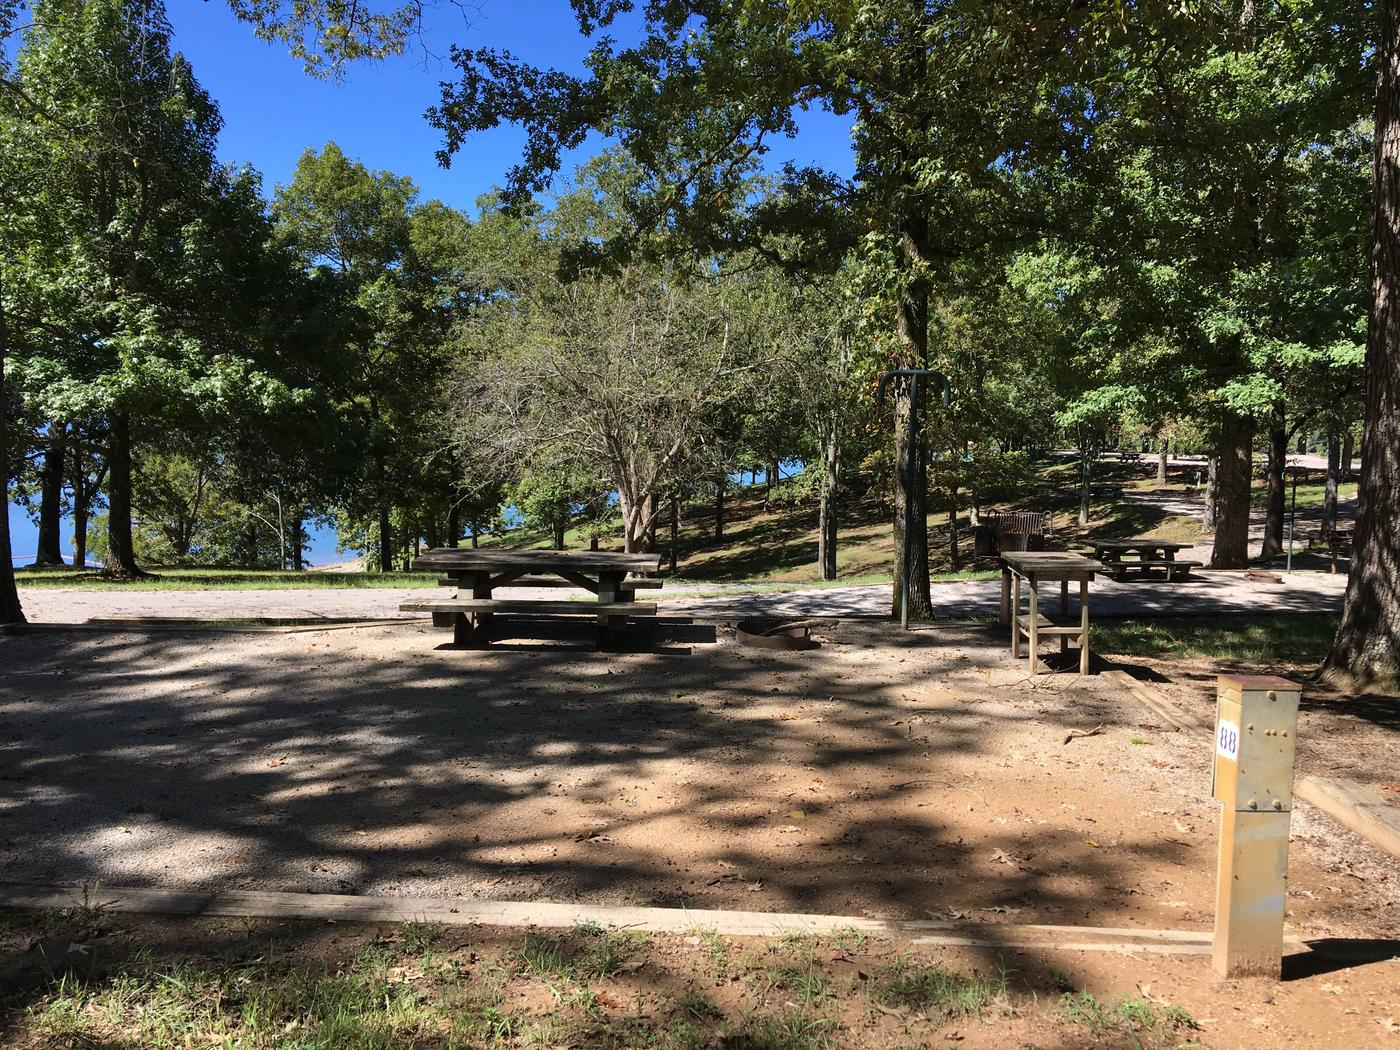 WILLOW GROVE CAMPGROUND SITE #88